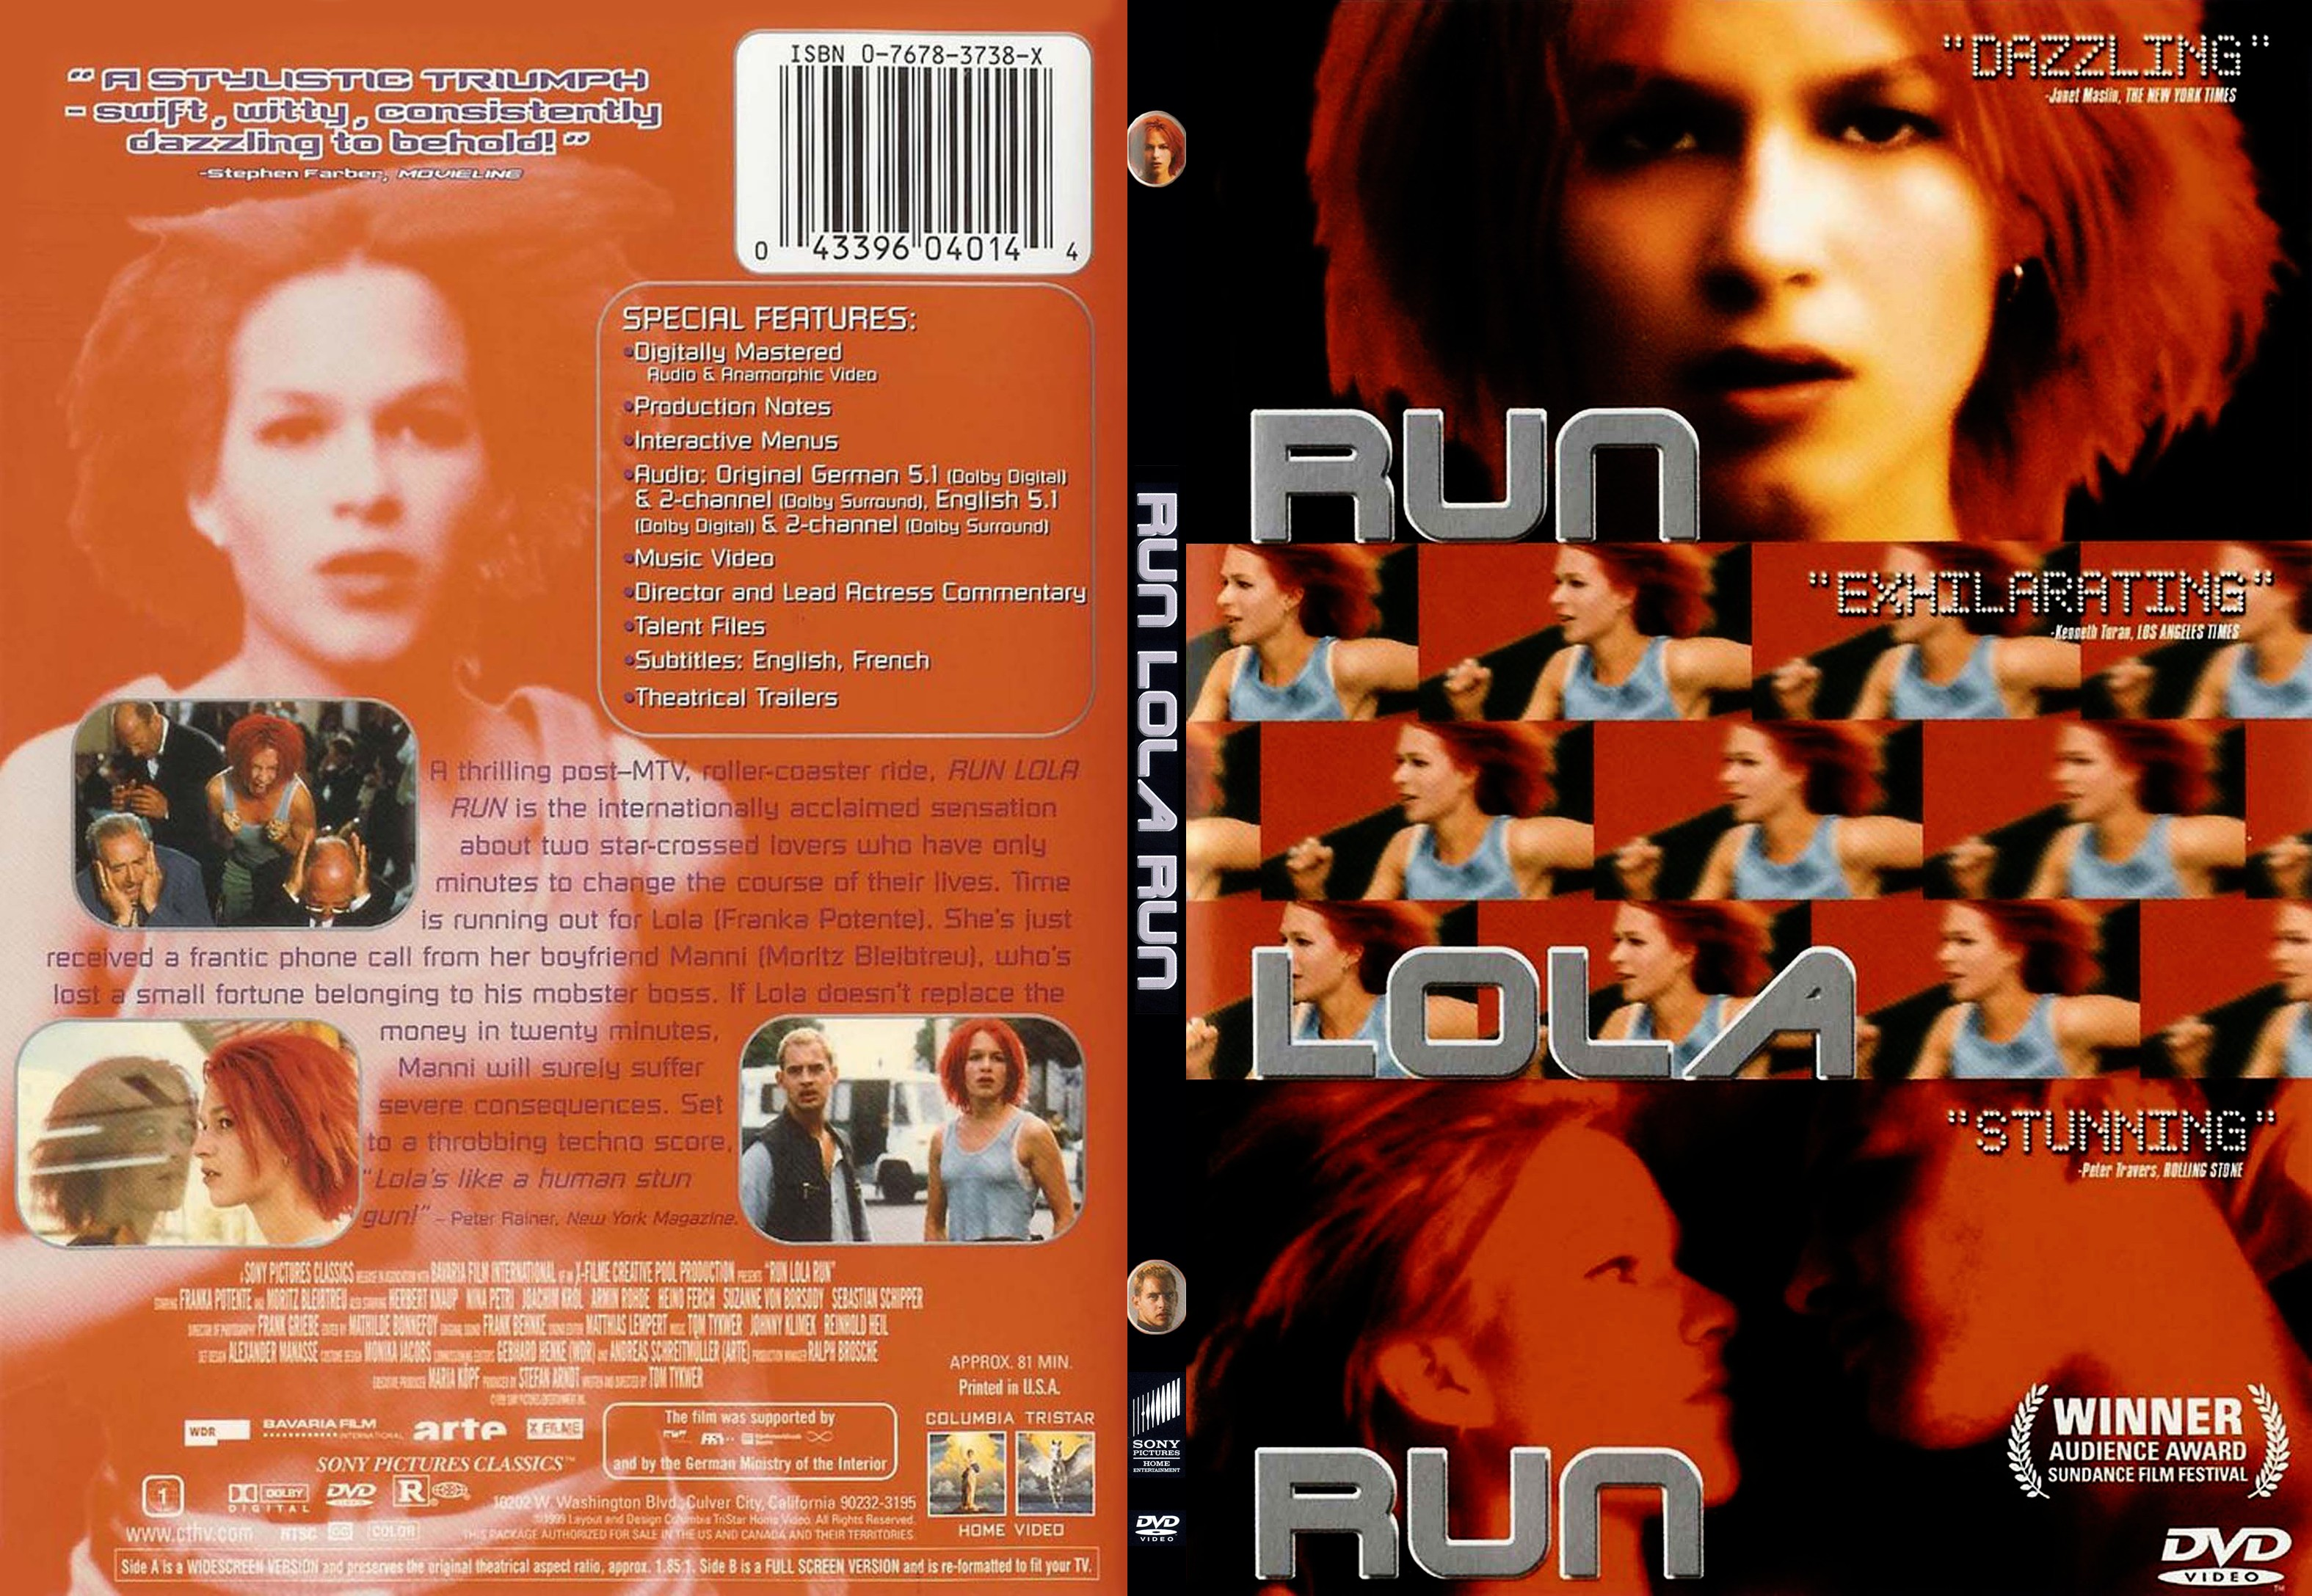 run lola run relentless passage of time essay Born to run by gordon mills settings plot characters theme of the book this book, born to run, is about debbie ferguson is a bahamian sprint athlete of jamaican decent she was born on january 16, 1976 and moved to little london, jamaica shortly after her birth with her mother where they lived with her grandparents.